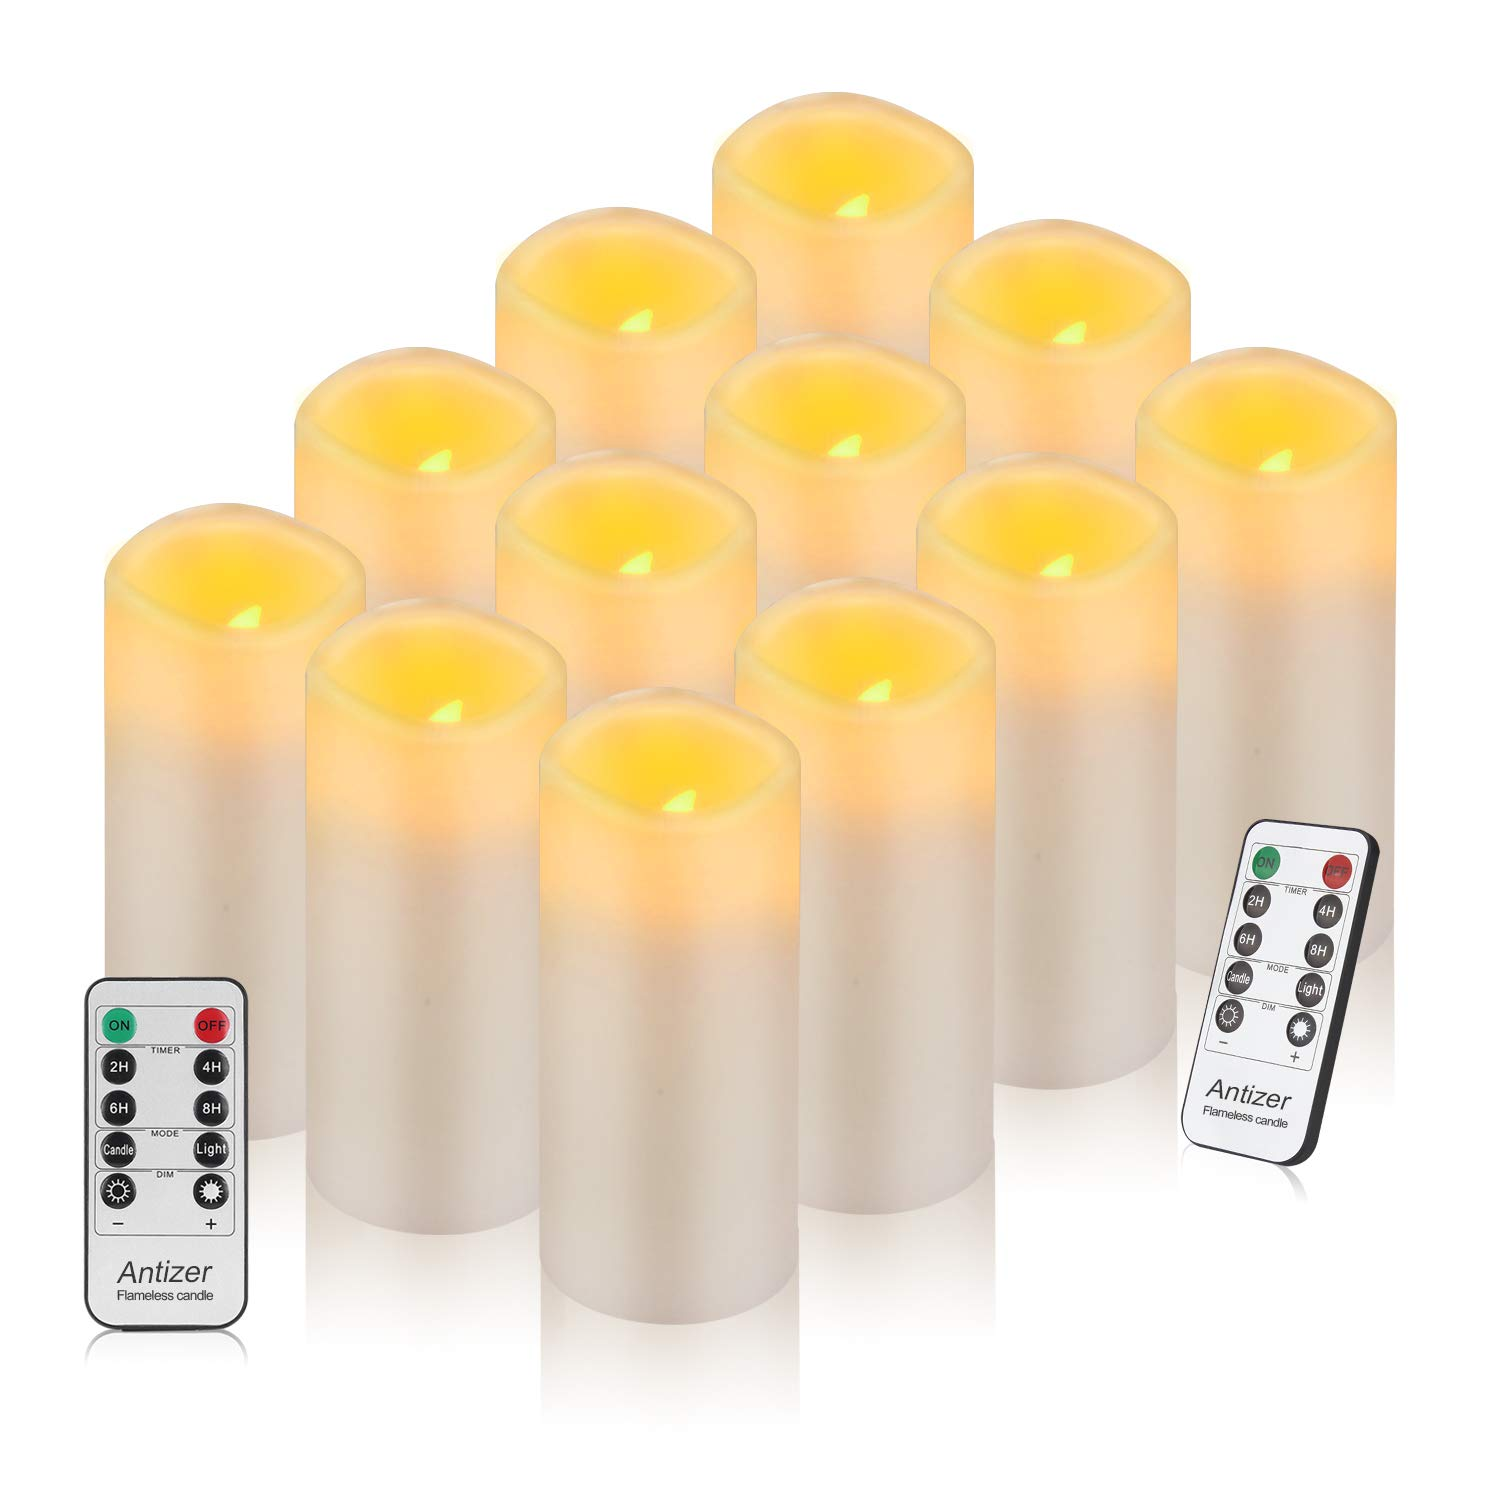 Antizer Flameless Candles 3 Pack Set Drip-Less Real Wax Pillars Include Realistic Dancing LED Flames and 10-Key Remote Control with 24-Hour Timer Function 400+ Hours by 2 AA Batteries (Burgundy) UPC0013B